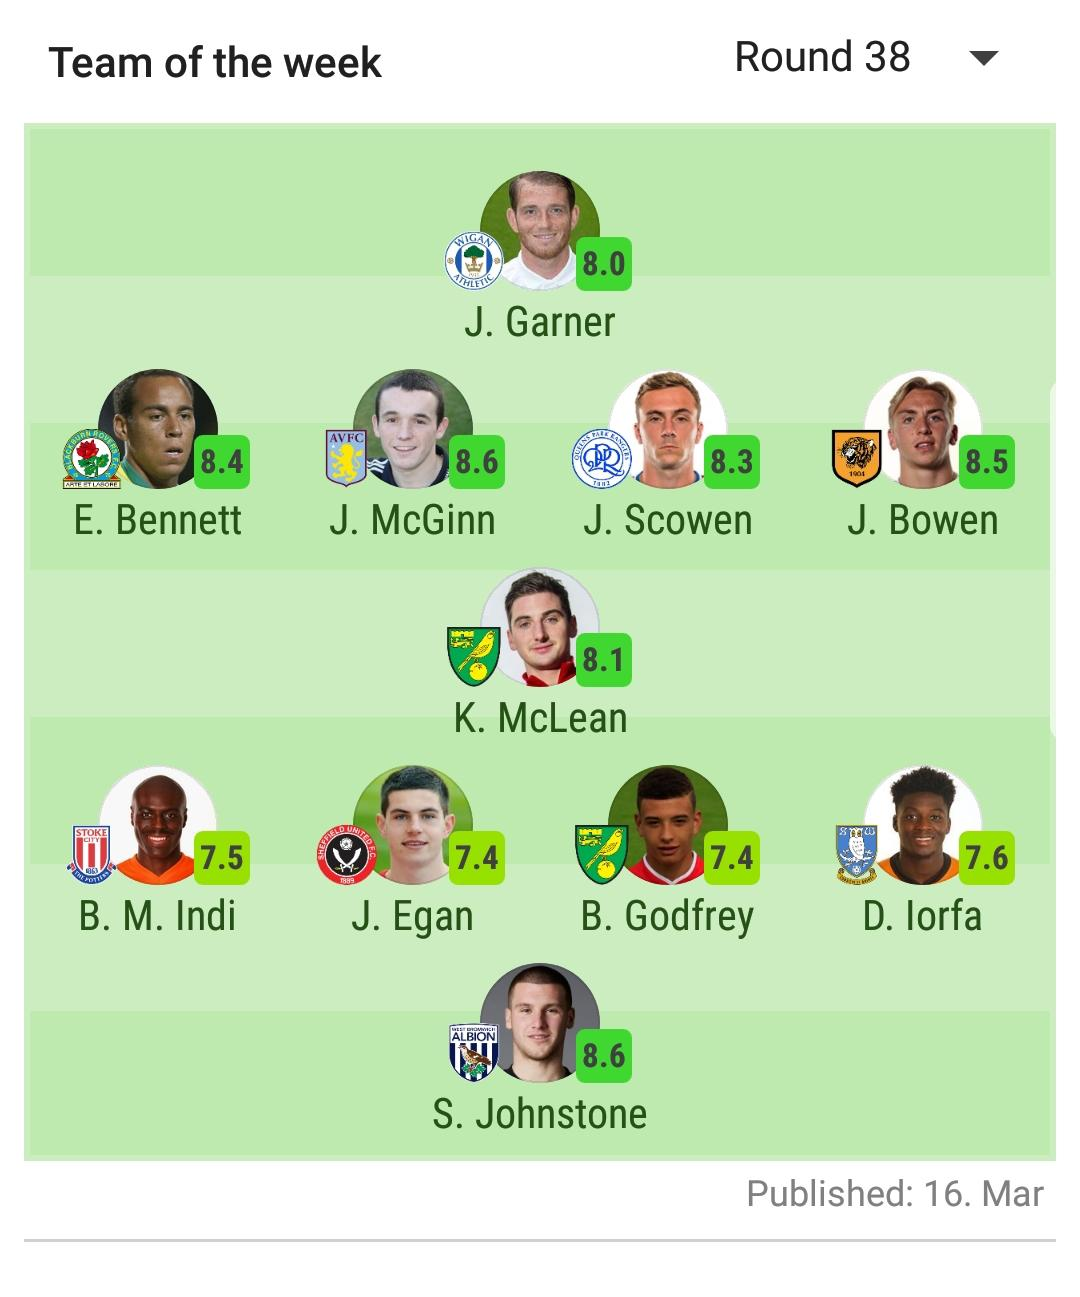 Sofascore Qpr Vs Derby Sofascore Championship Team Of The Week Round 38 Championship